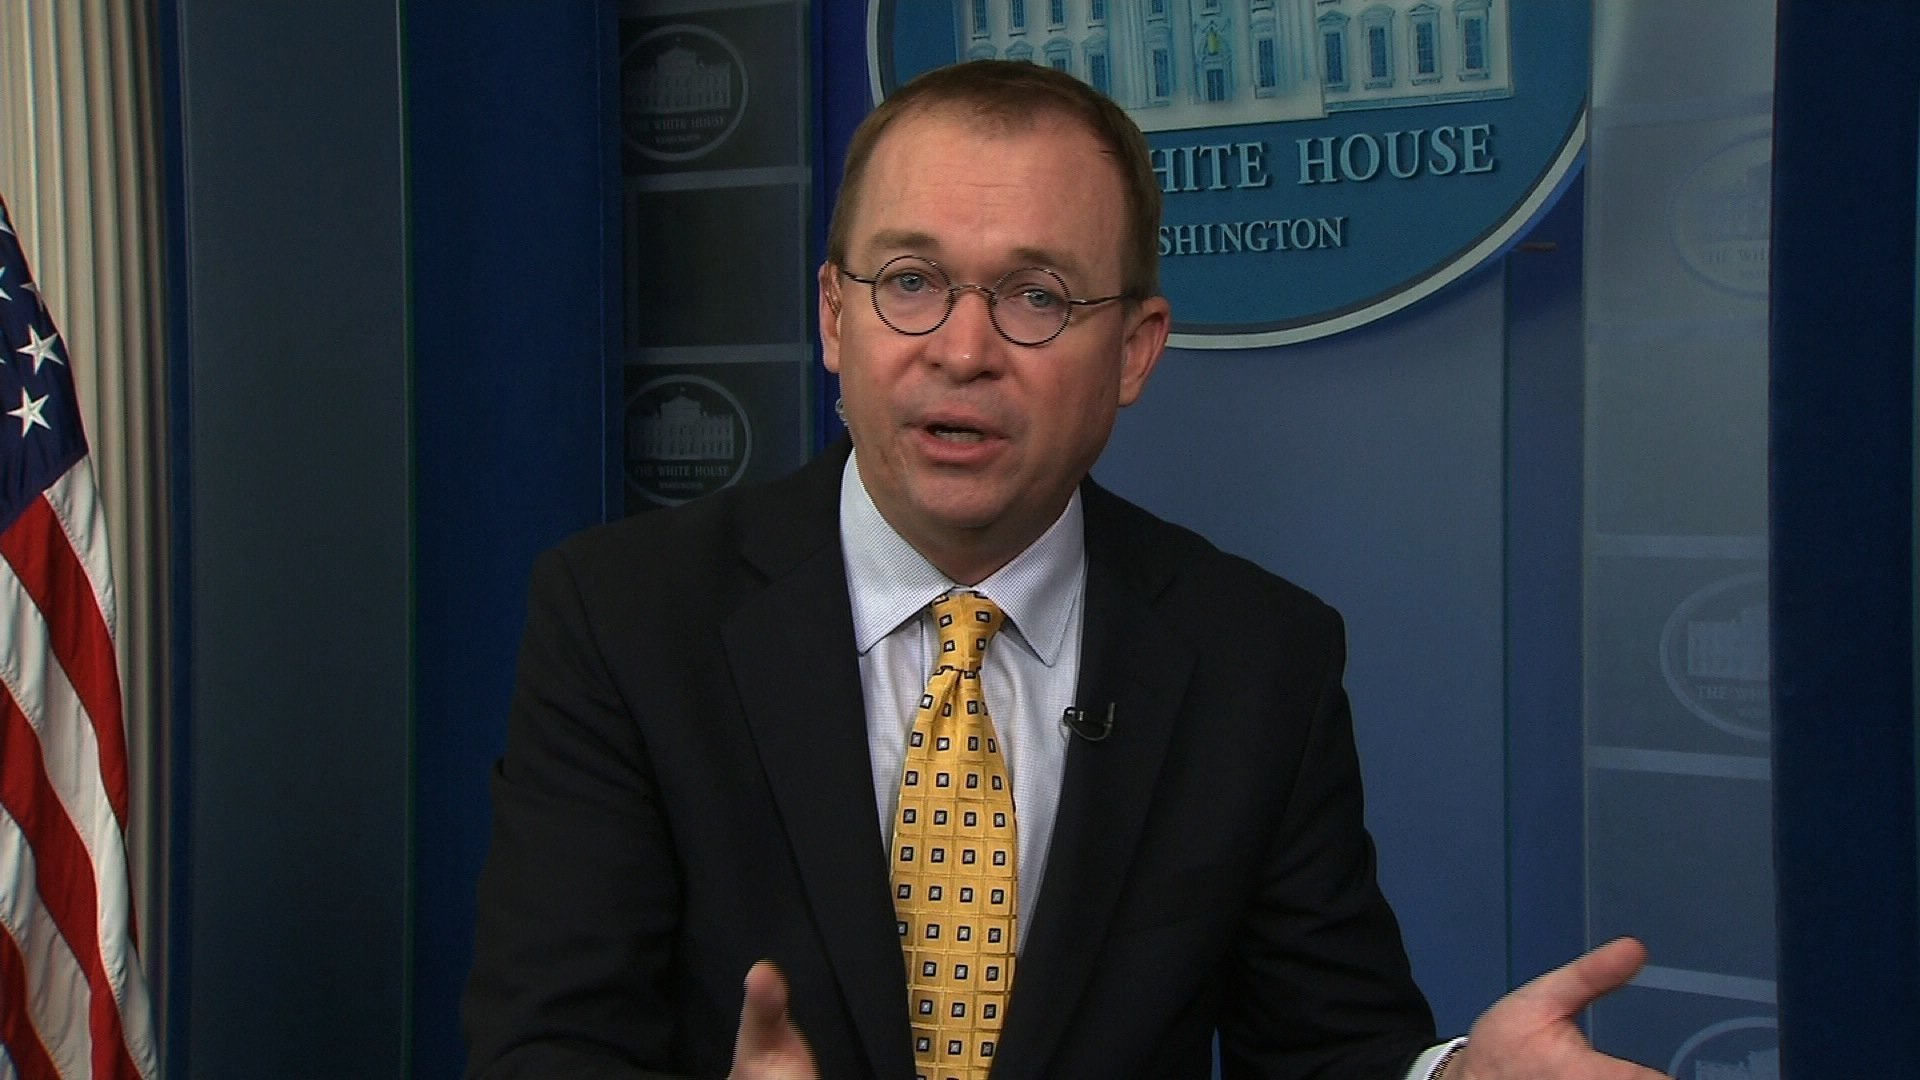 Mick Mulvaney Admits to Only Meeting With Lobbyists Who Gave Him Money